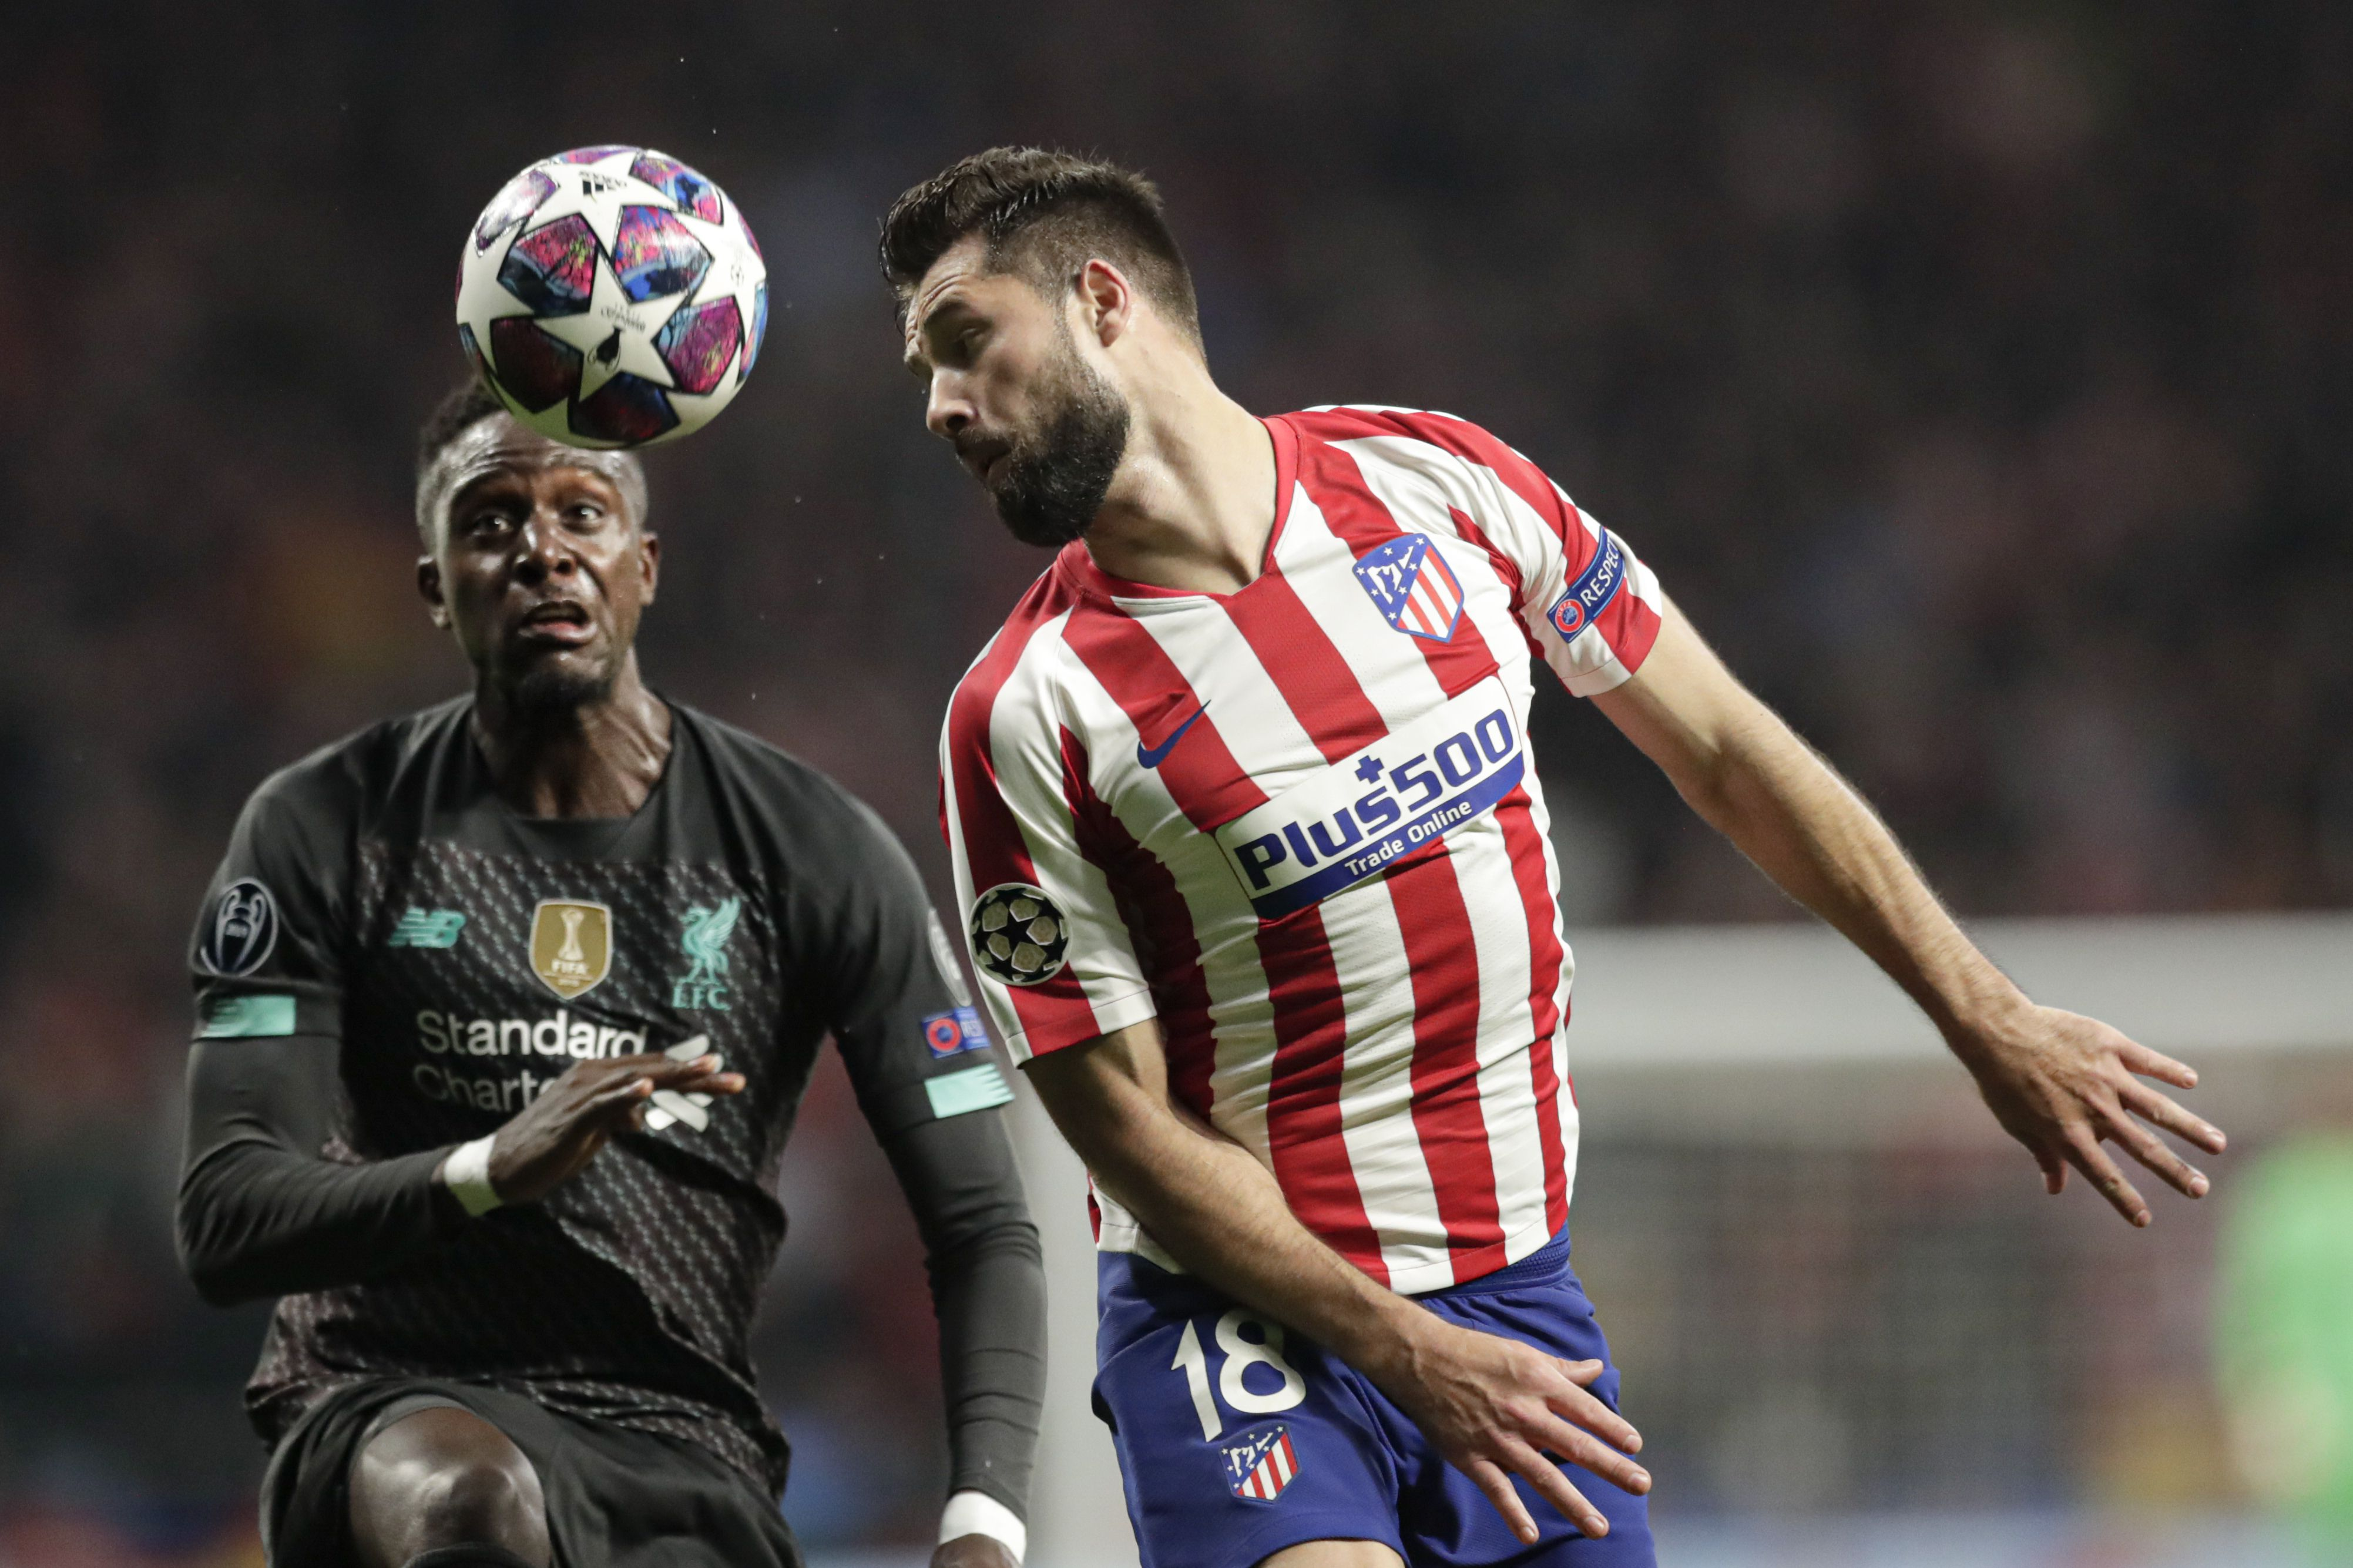 Liverpool Vs Atletico Madrid Free Live Stream 3 11 20 Watch Uefa Champions League Round Of 16 Leg 2 Online Time Usa Tv Channel Nj Com